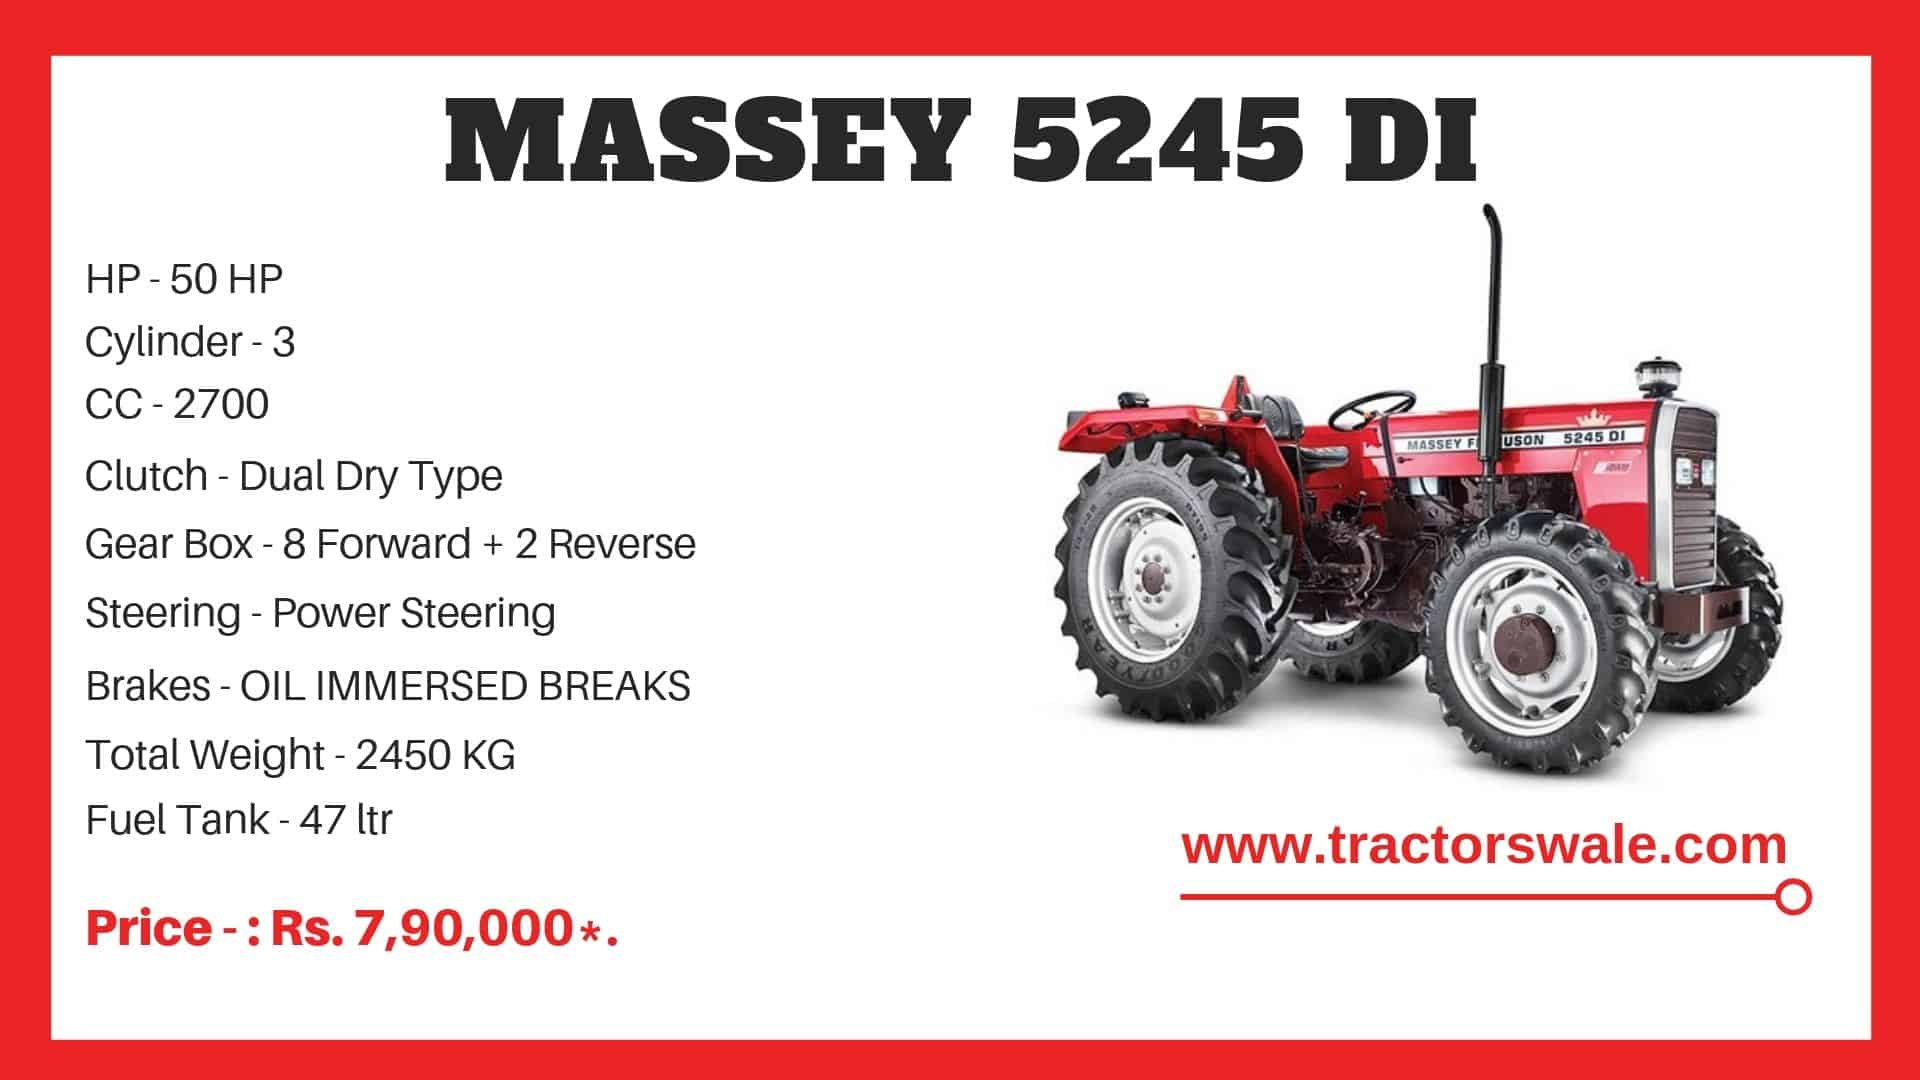 massey ferguson 5245 di price list